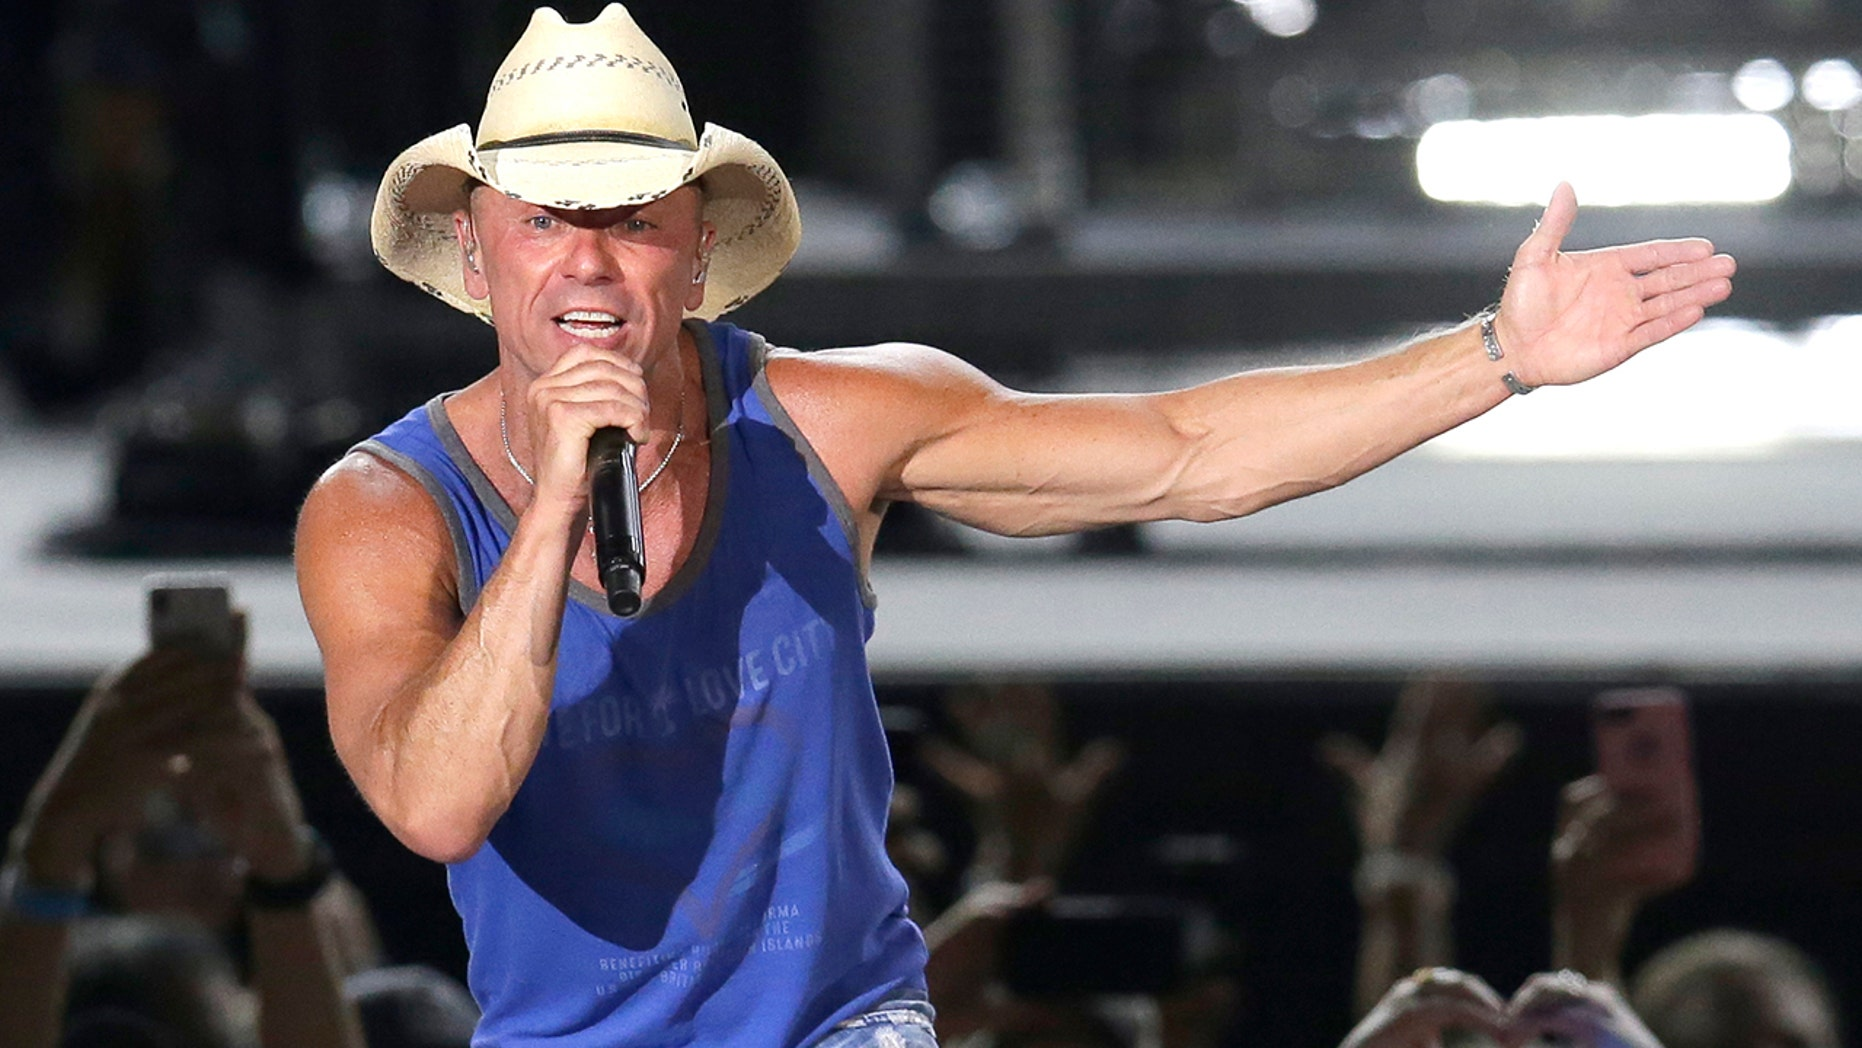 "In this June 23, 2018 file photo, Kenny Chesney performs during the Trip Around the Sun Tour in Phoenix. After Hurricane Irma decimated the U.S. Virgin Islands last year, country superstar Kenny Chesney started writing songs and organizing relief efforts. Chesney is donating proceeds from the sale of his new album, ""Songs for the Saints,"" to a foundation he set up to support recovery on the islands."